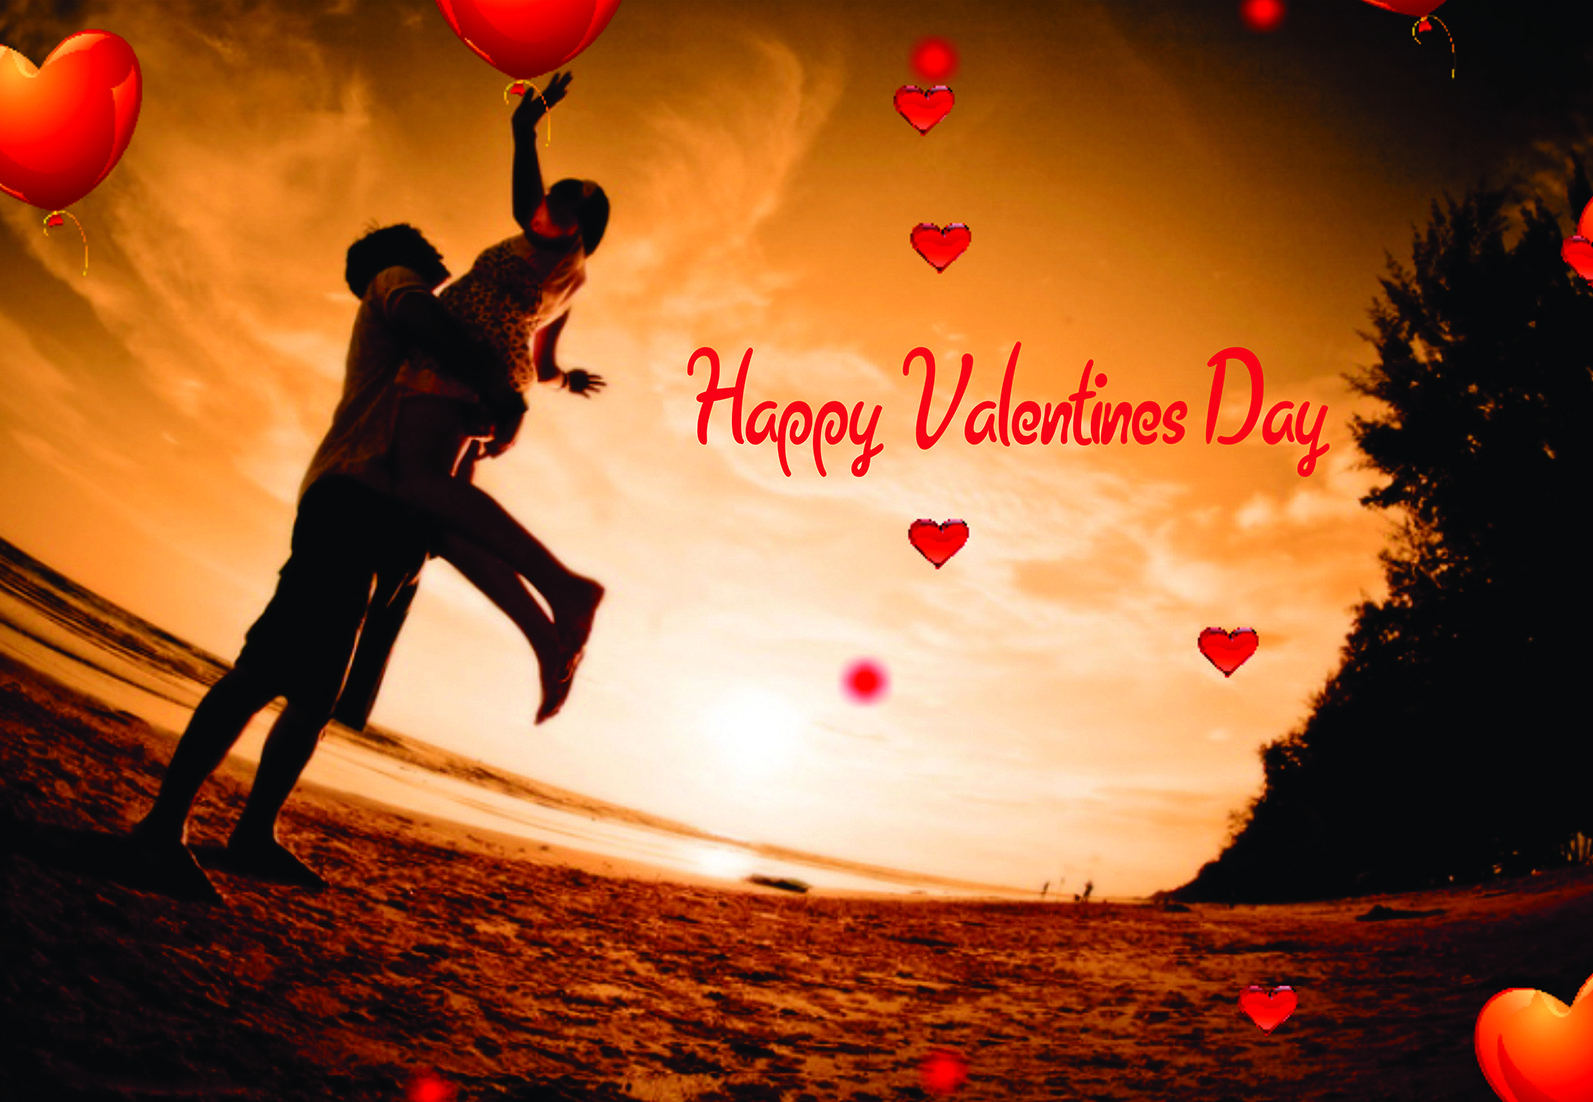 World Best Love Wallpaper For Mobile : Valentine s Day HD Wallpaper